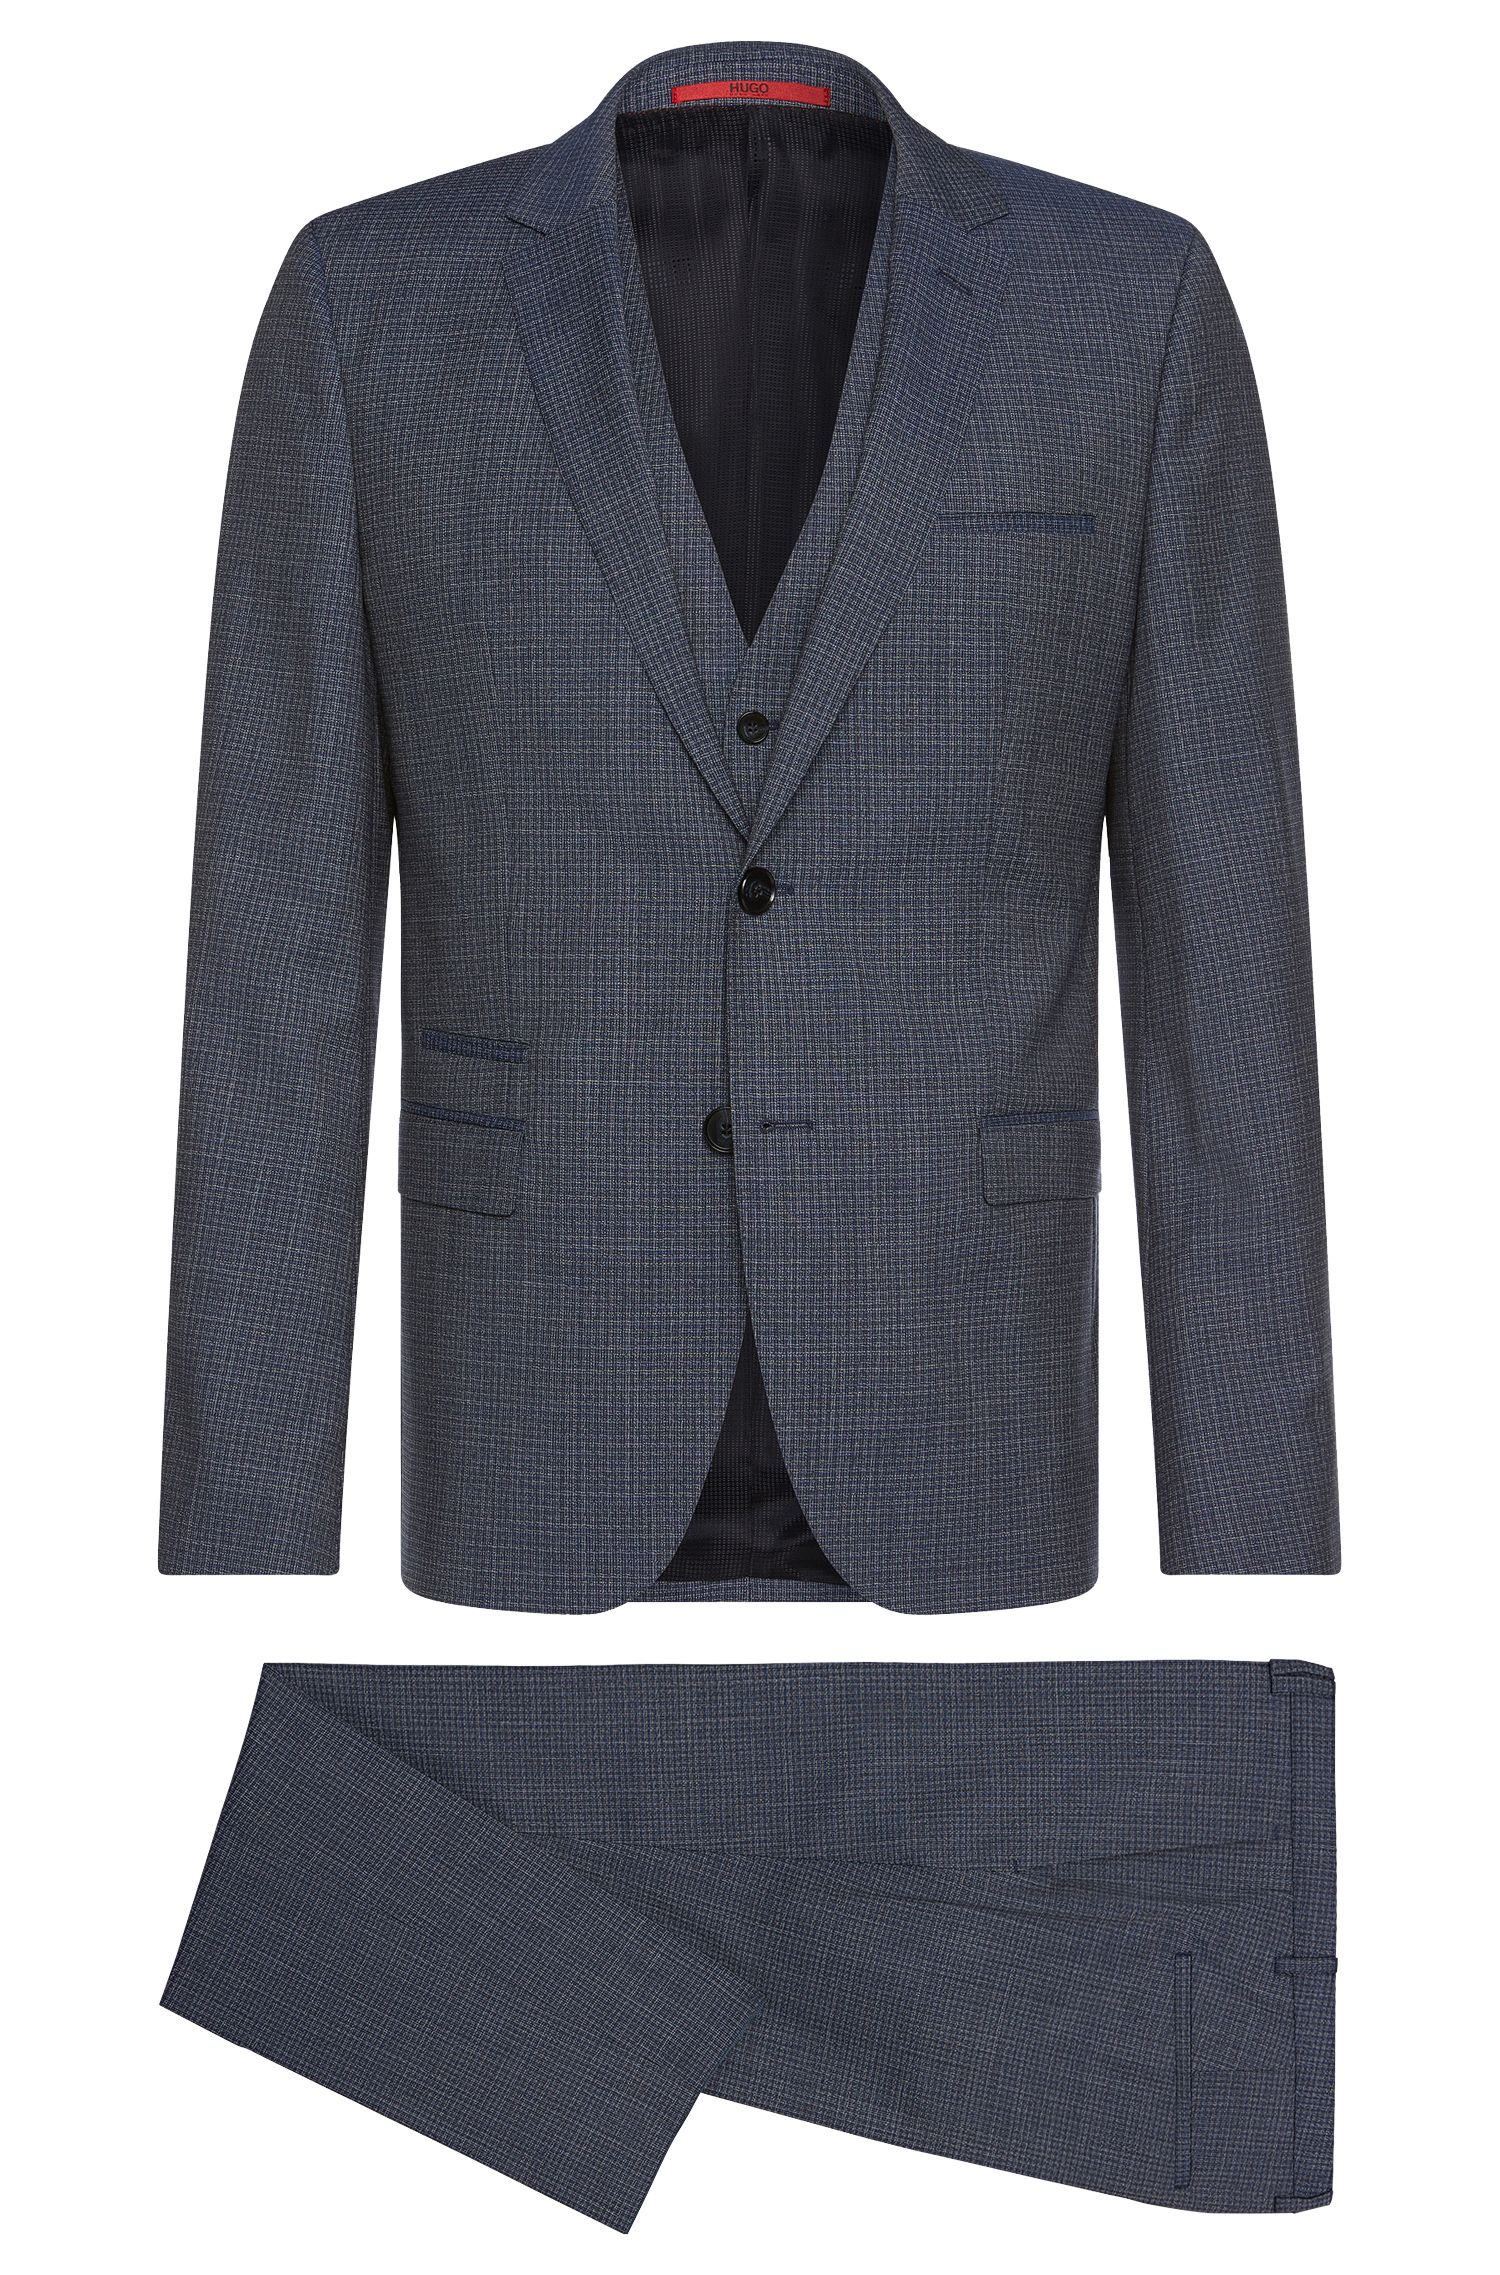 Italian Super 100 Virgin Wool 3-Piece Suit, Slim Fit | Arney/Wilord/Hyls